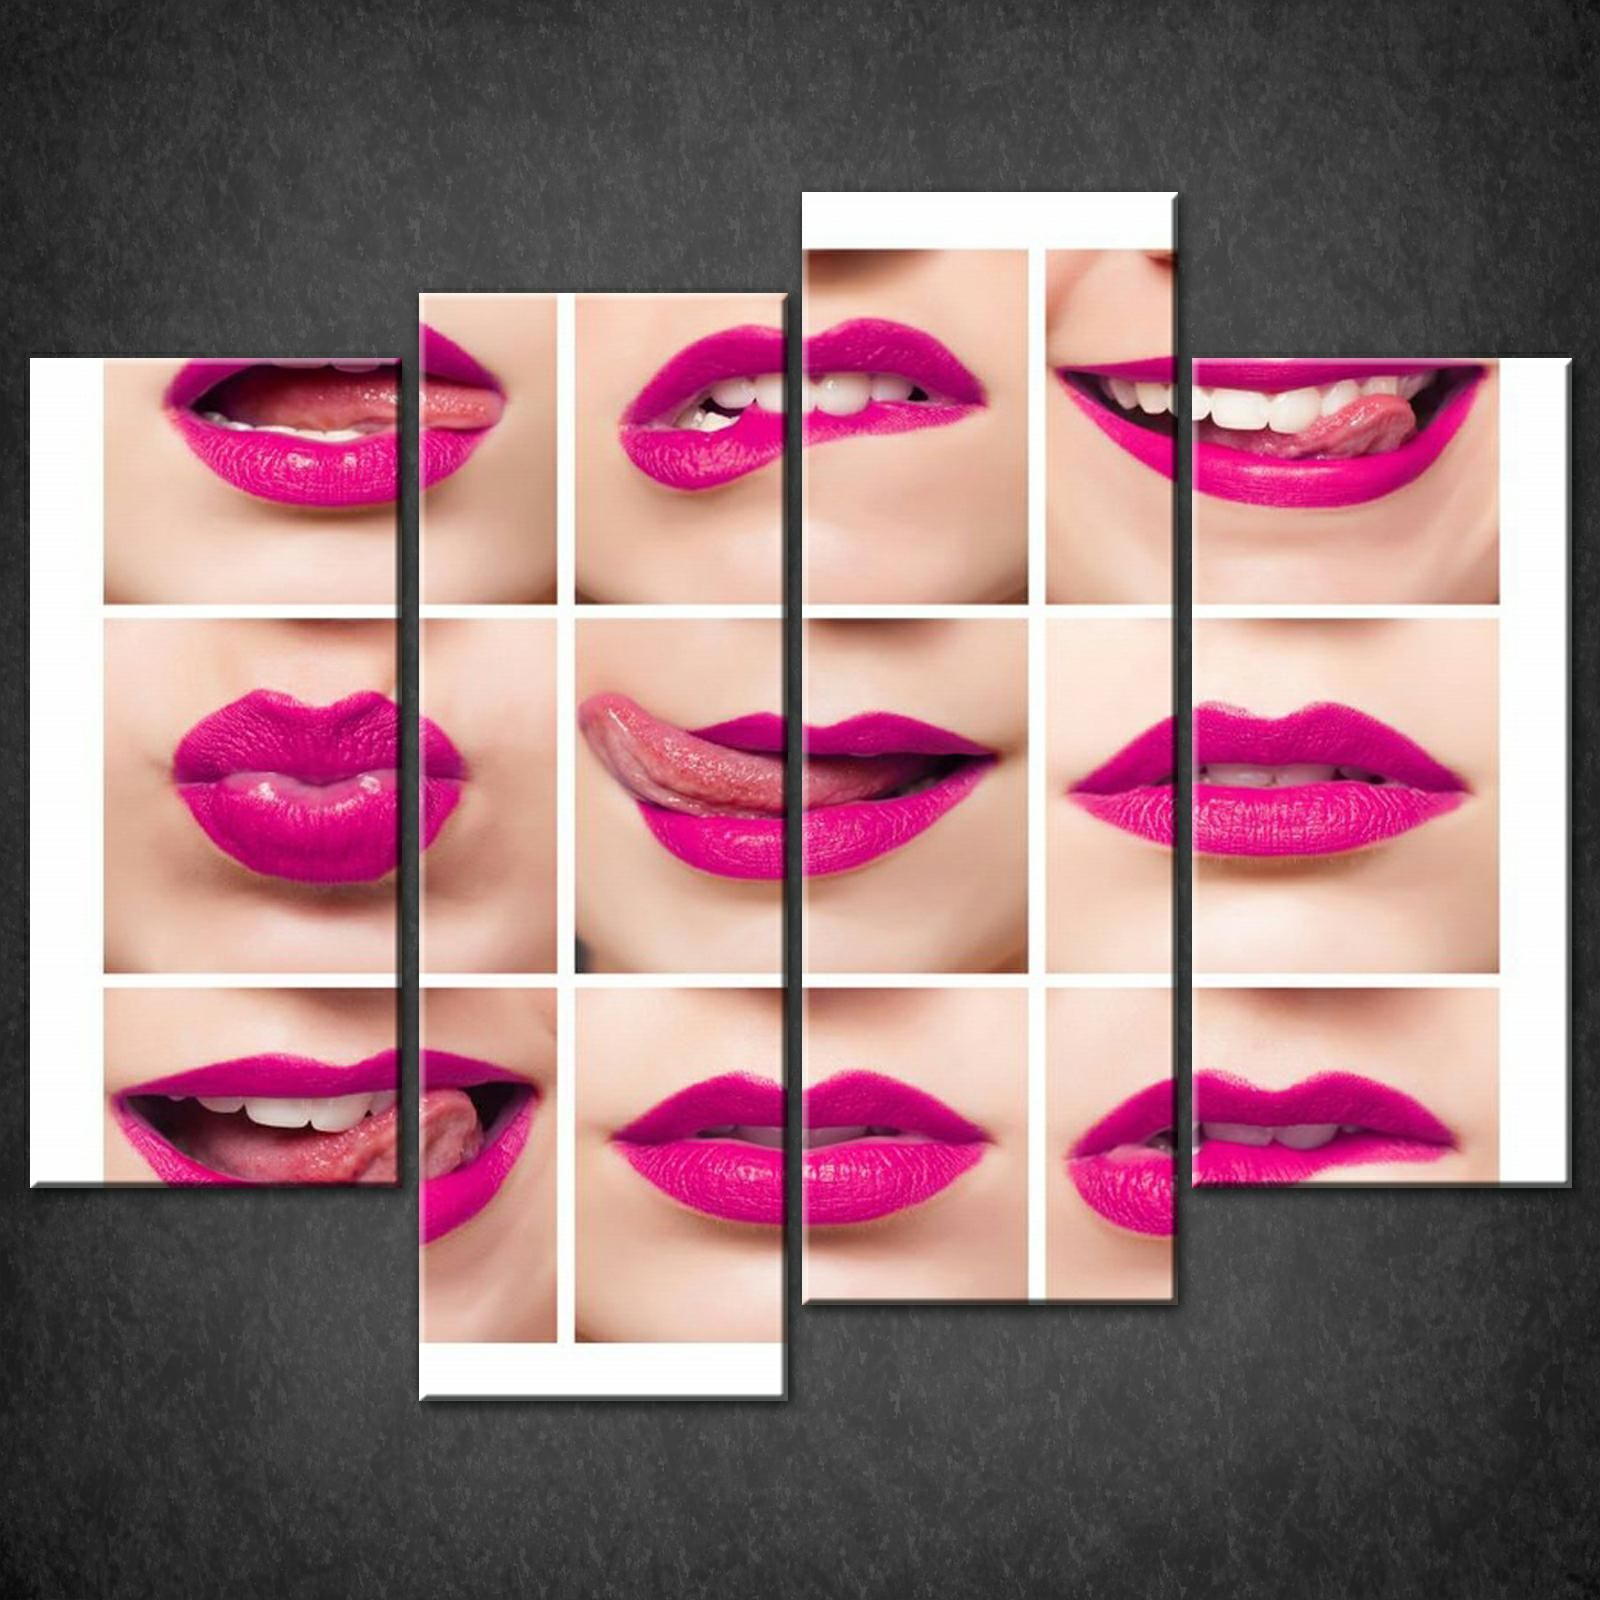 PINK LIPS CANVAS PRINT PICTURE WALL ART